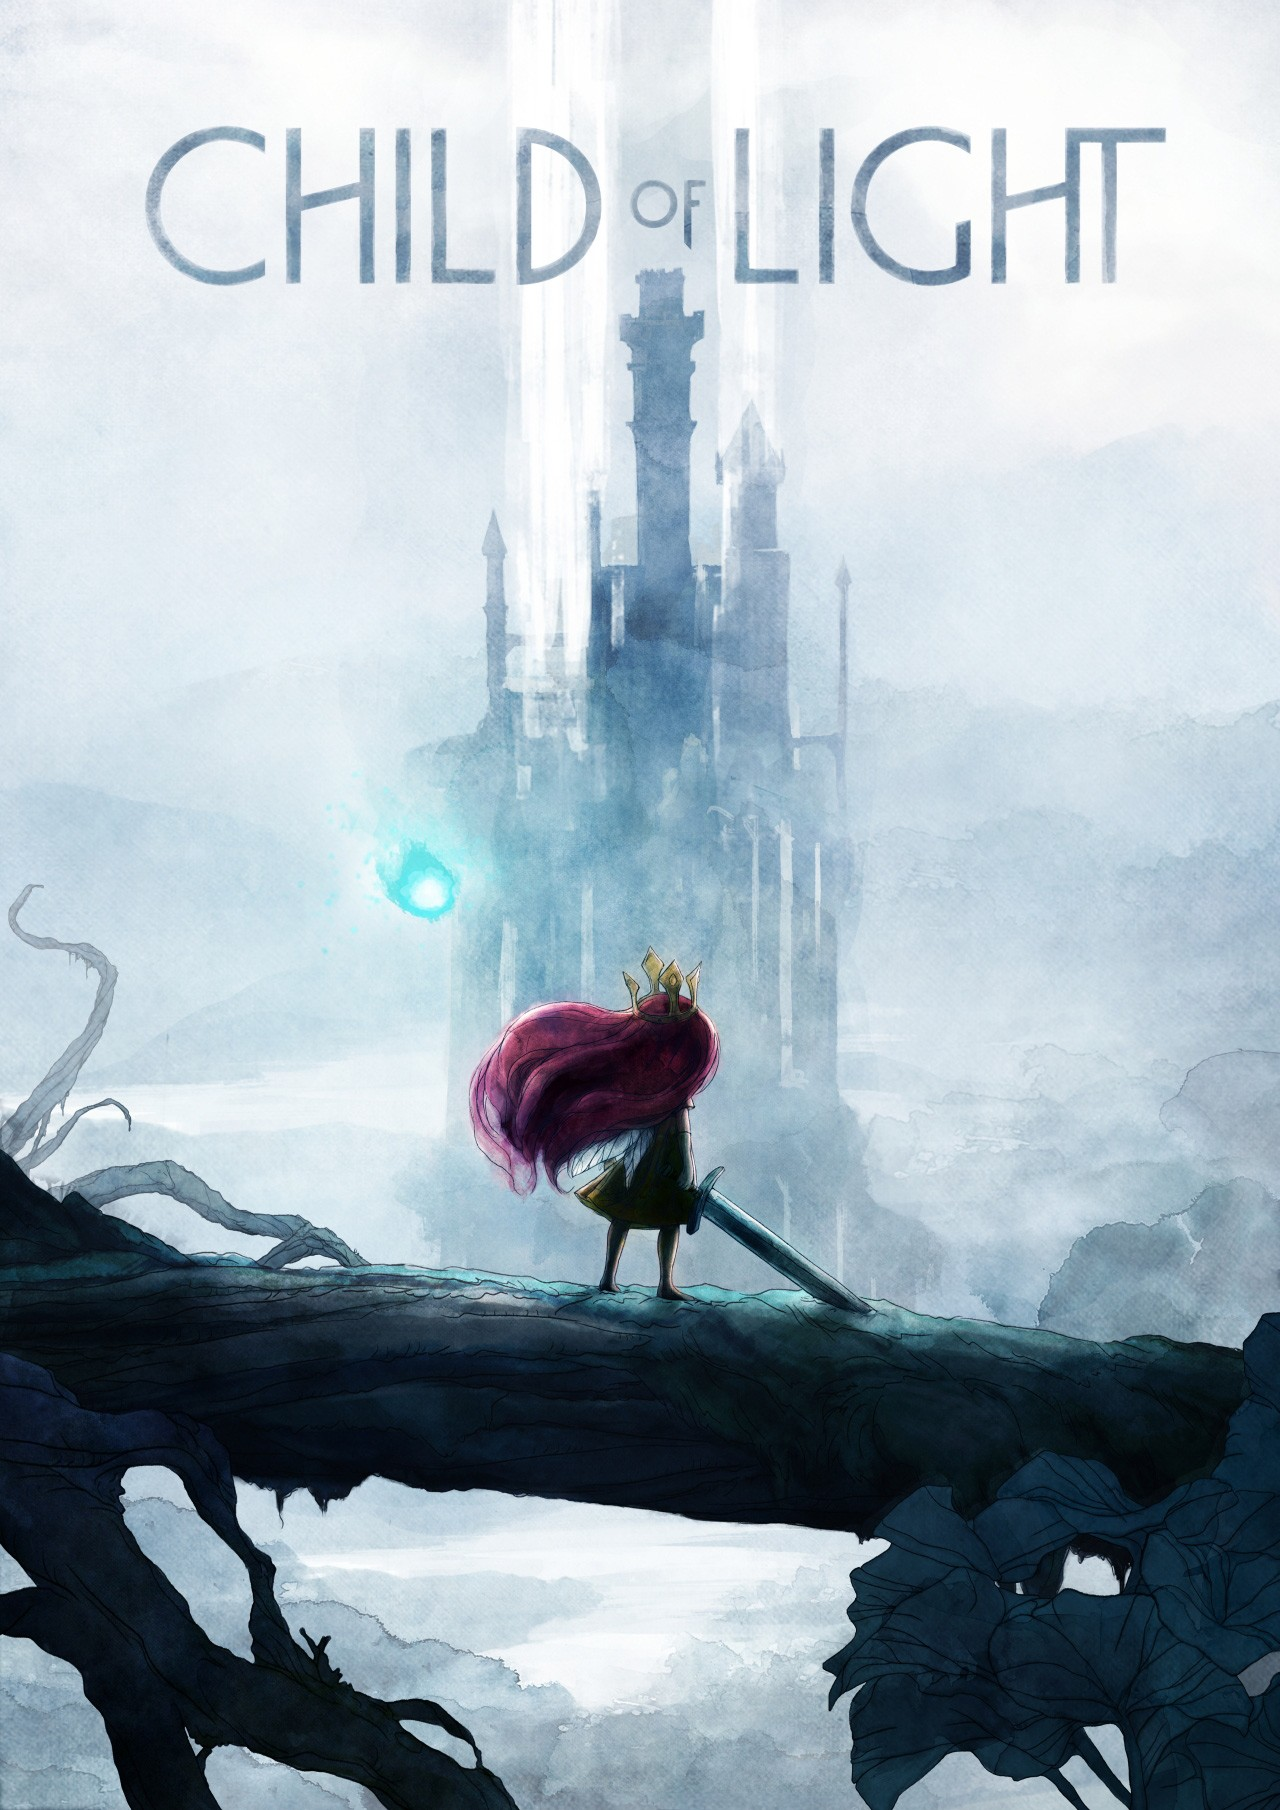 Child of Light 光之子